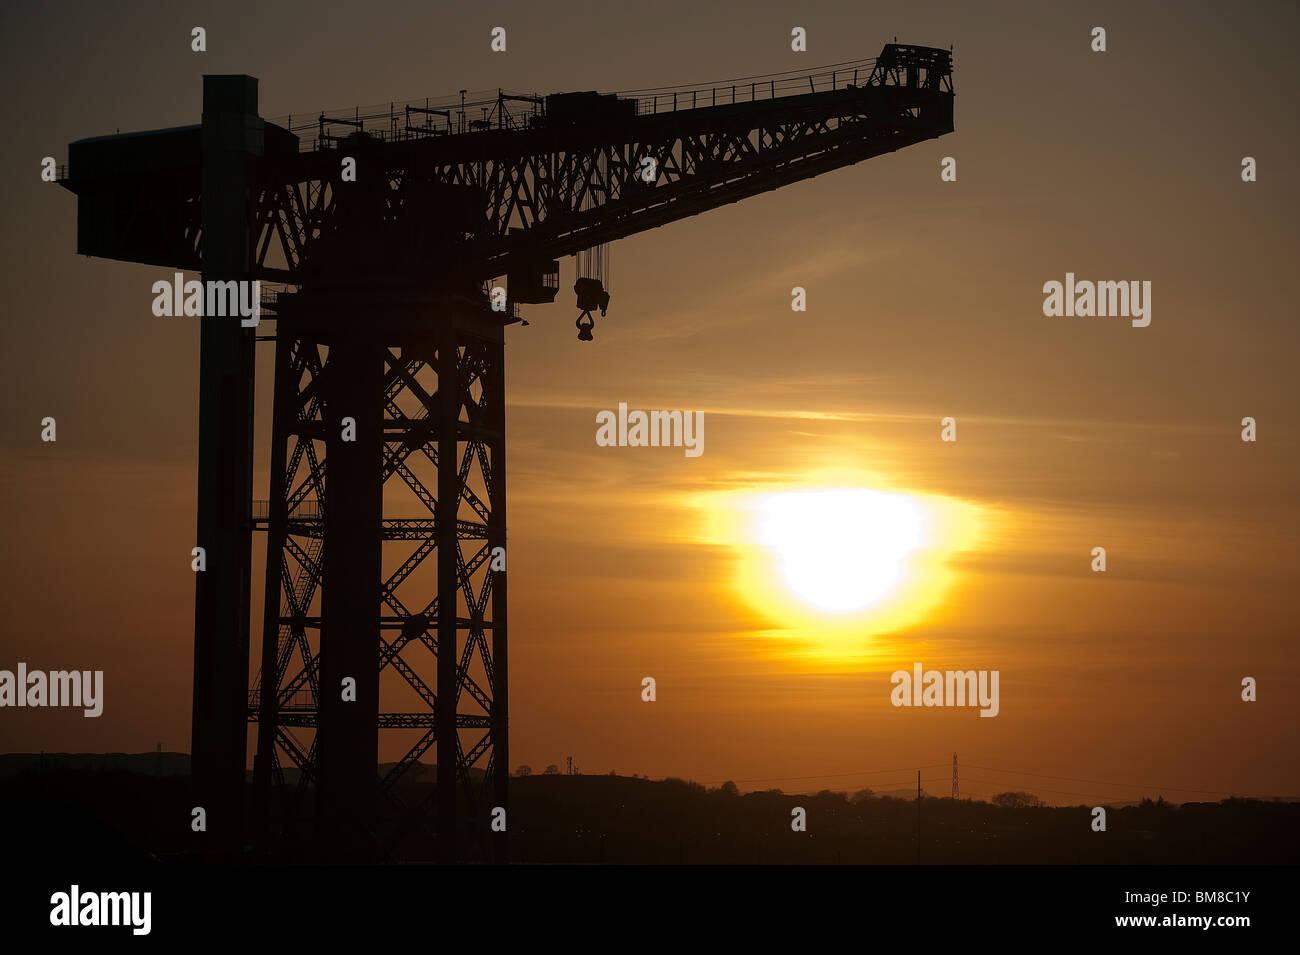 The Titan crane in Clydebank on the outskirts of Glasgow is silhouetted against the sunset. - Stock Image